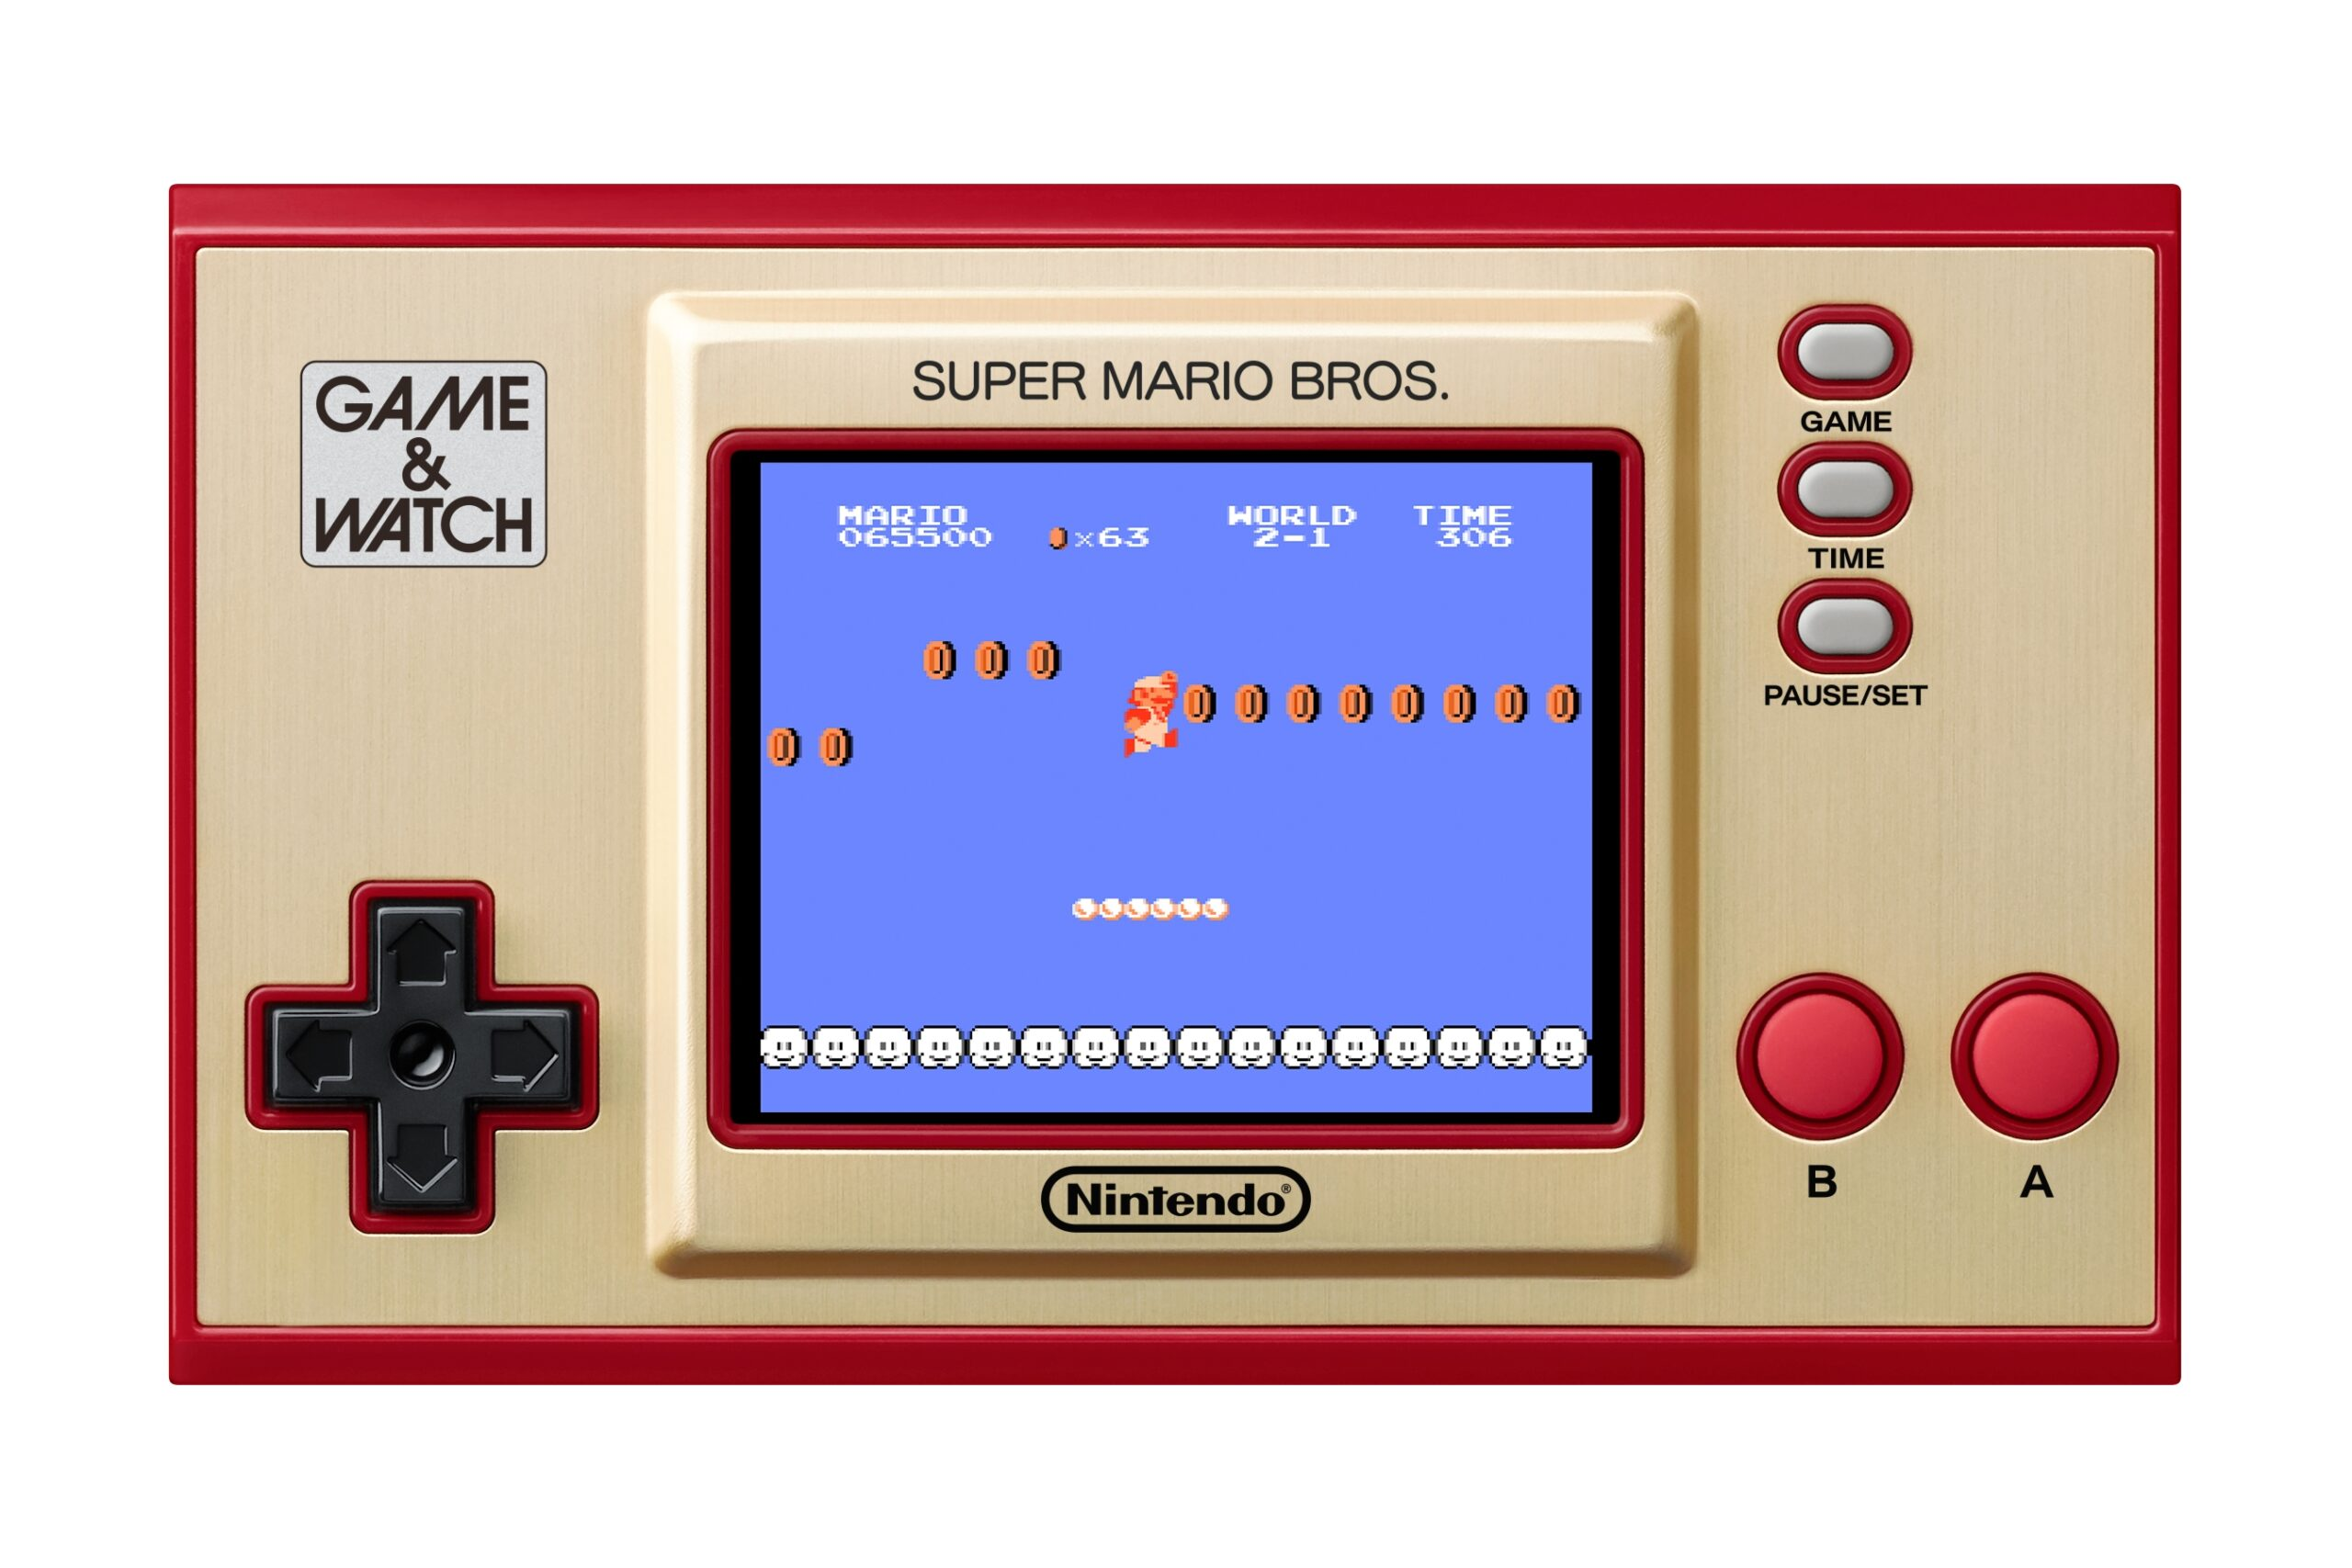 Game-and-Watch-Super-Mario-Bros_2020_09-03-20_010